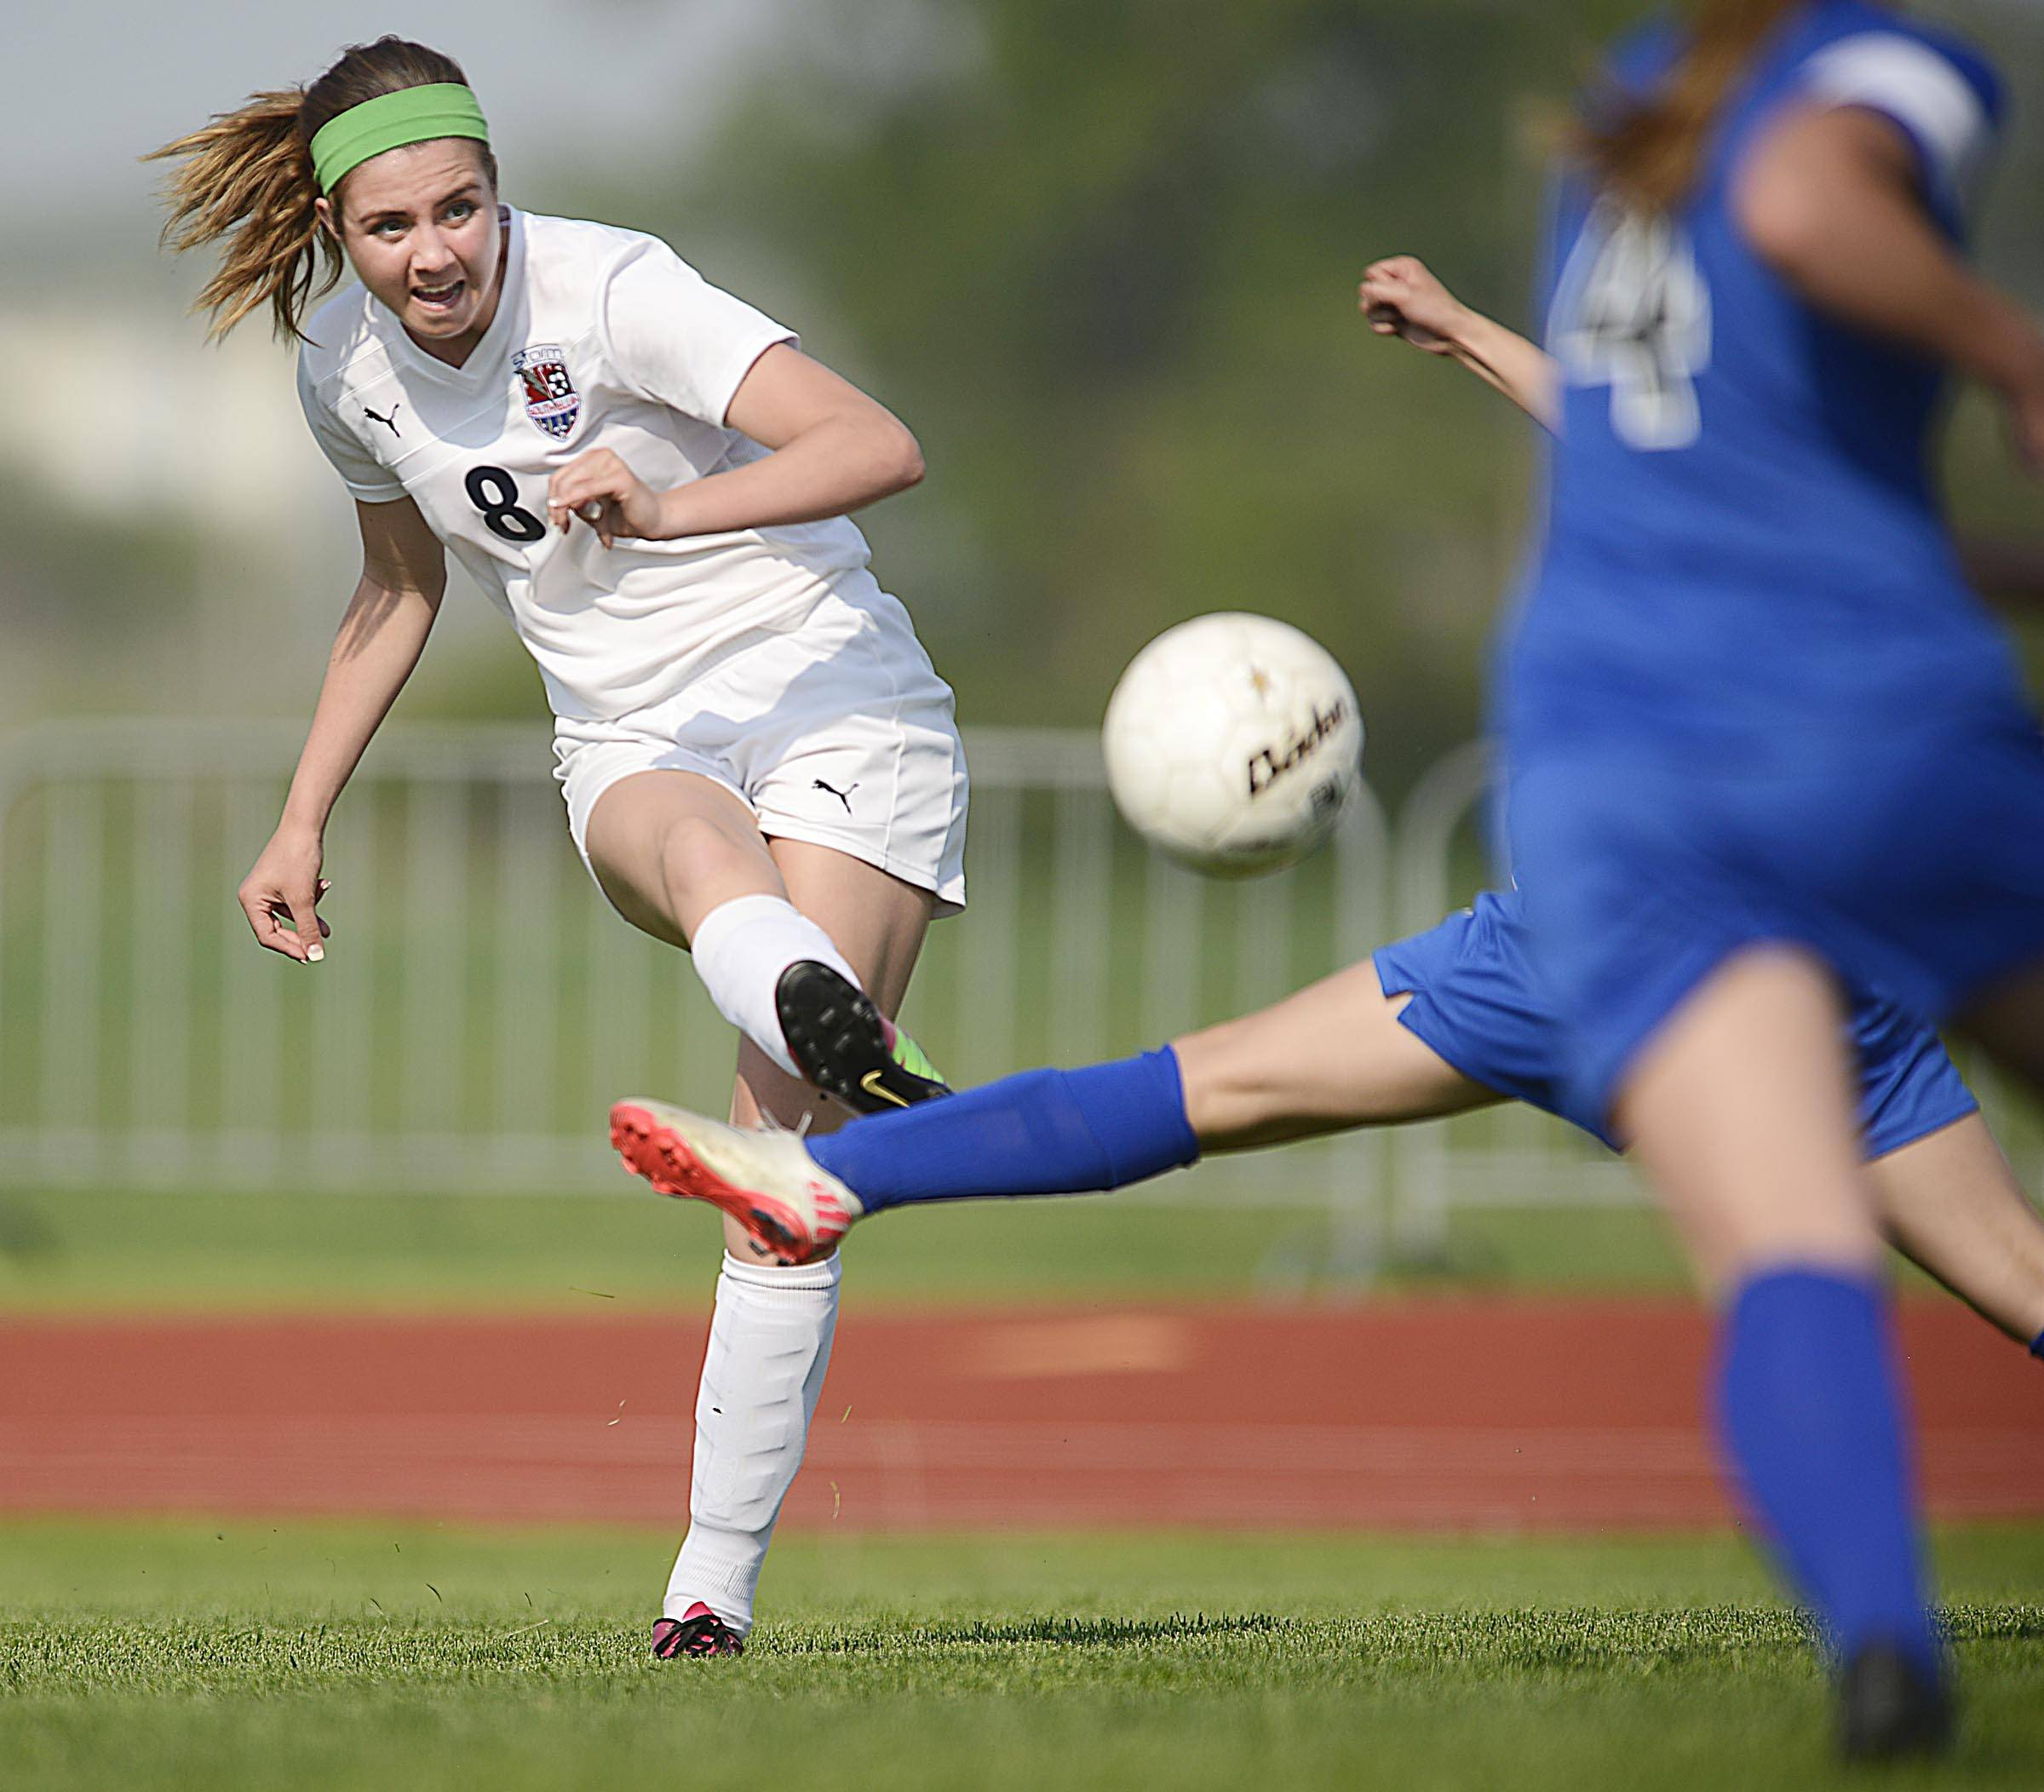 South Elgin's Delaney Kelleher scores the first goal of the game against Larkin Tuesday in South Elgin.